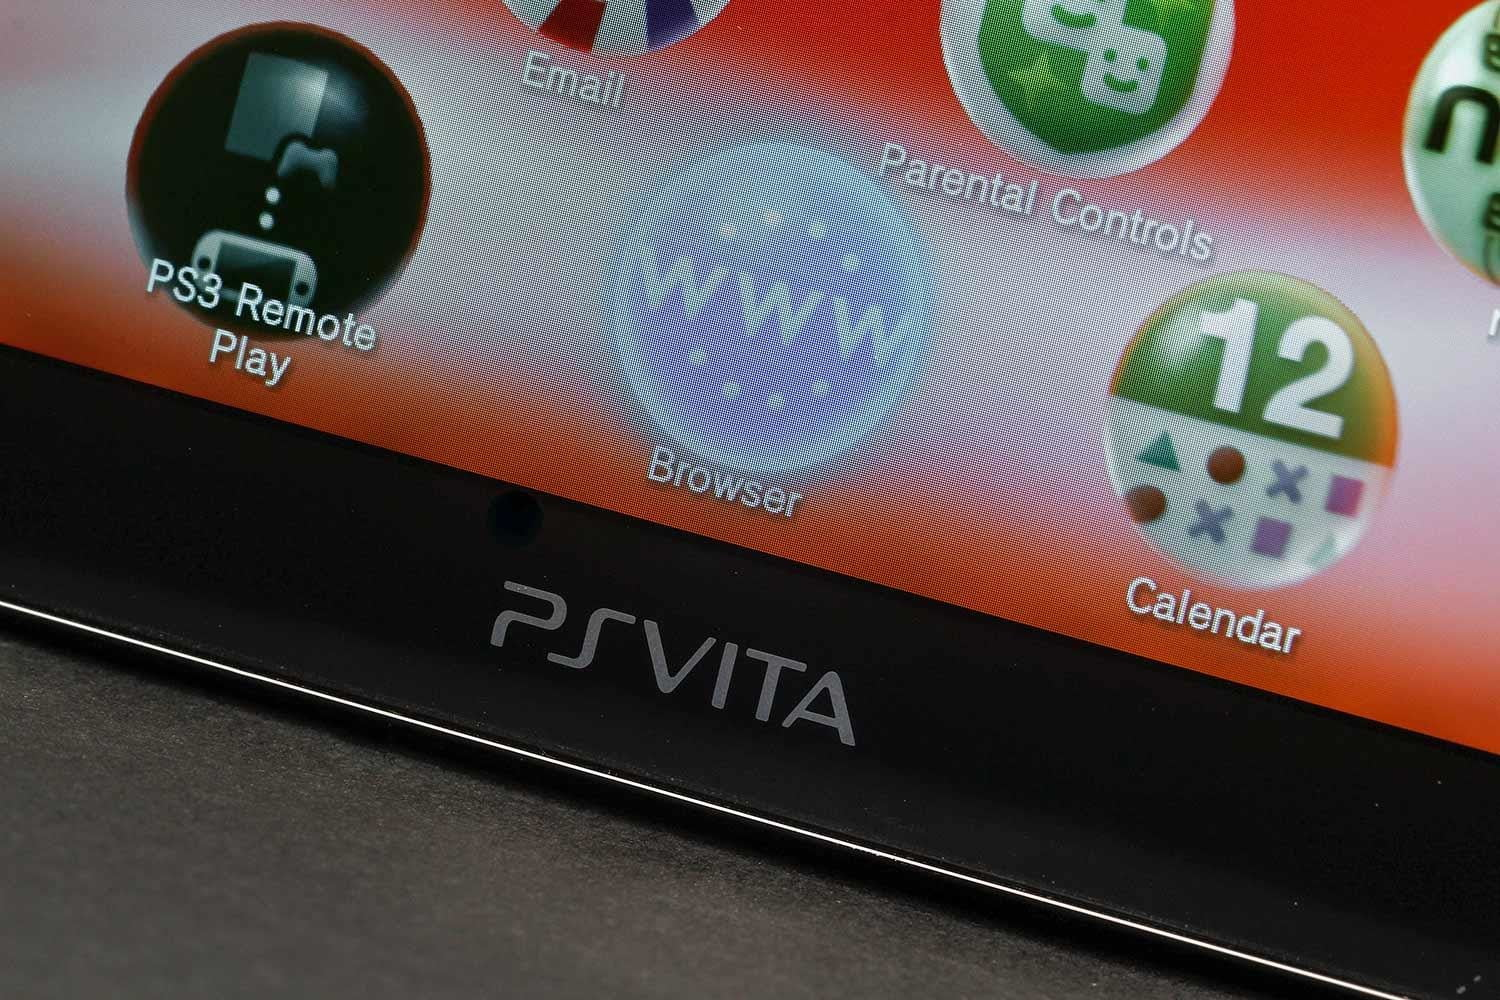 The PlayStation Vita is Dead, But iOS Just Got Its Best